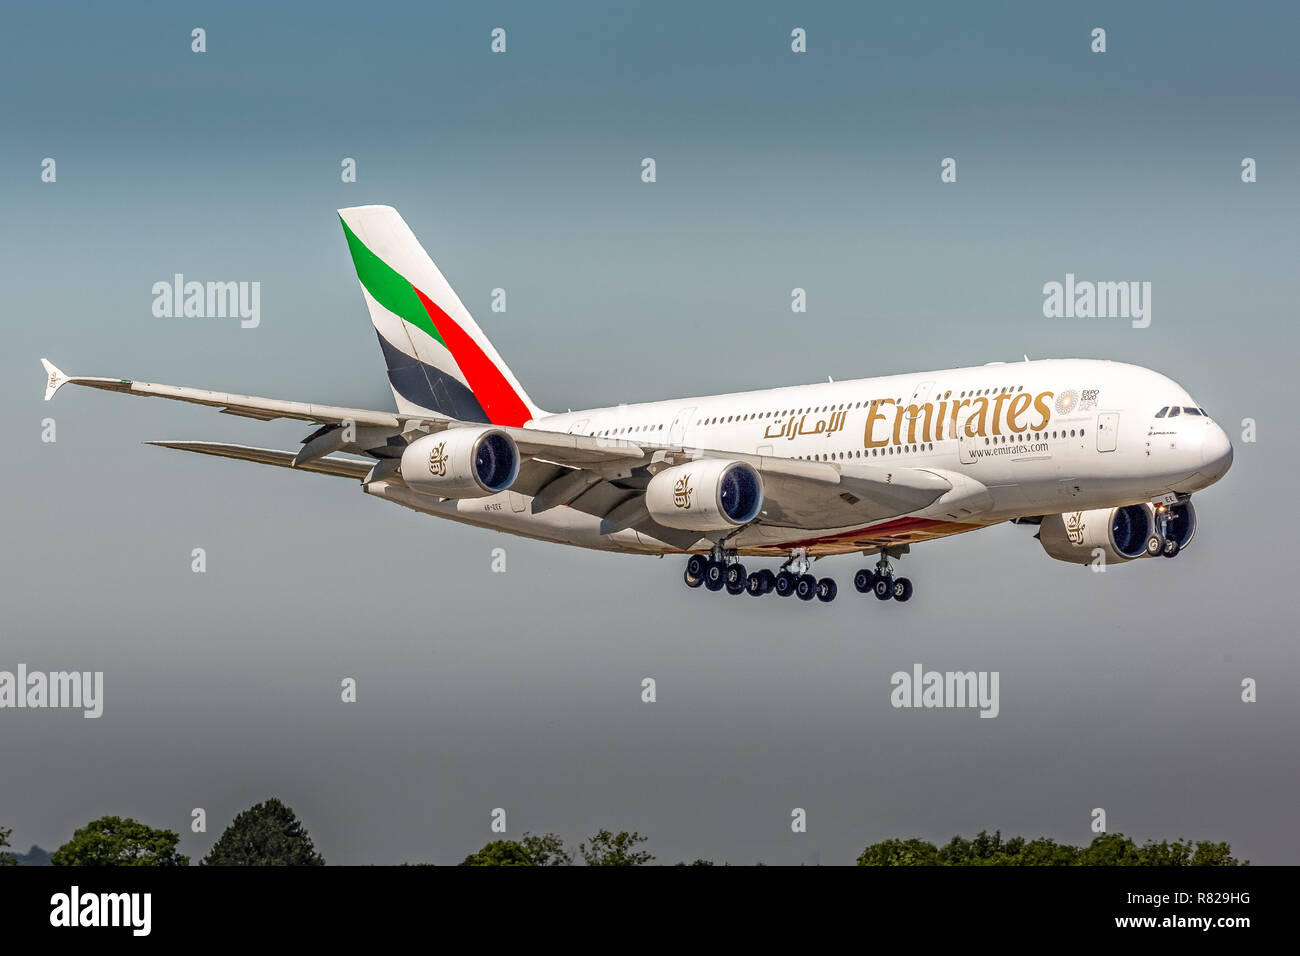 An Emirates Airlines Airbus A380 aircraft, registration A6-EEE, landing at Manchester Airport in England. - Stock Image